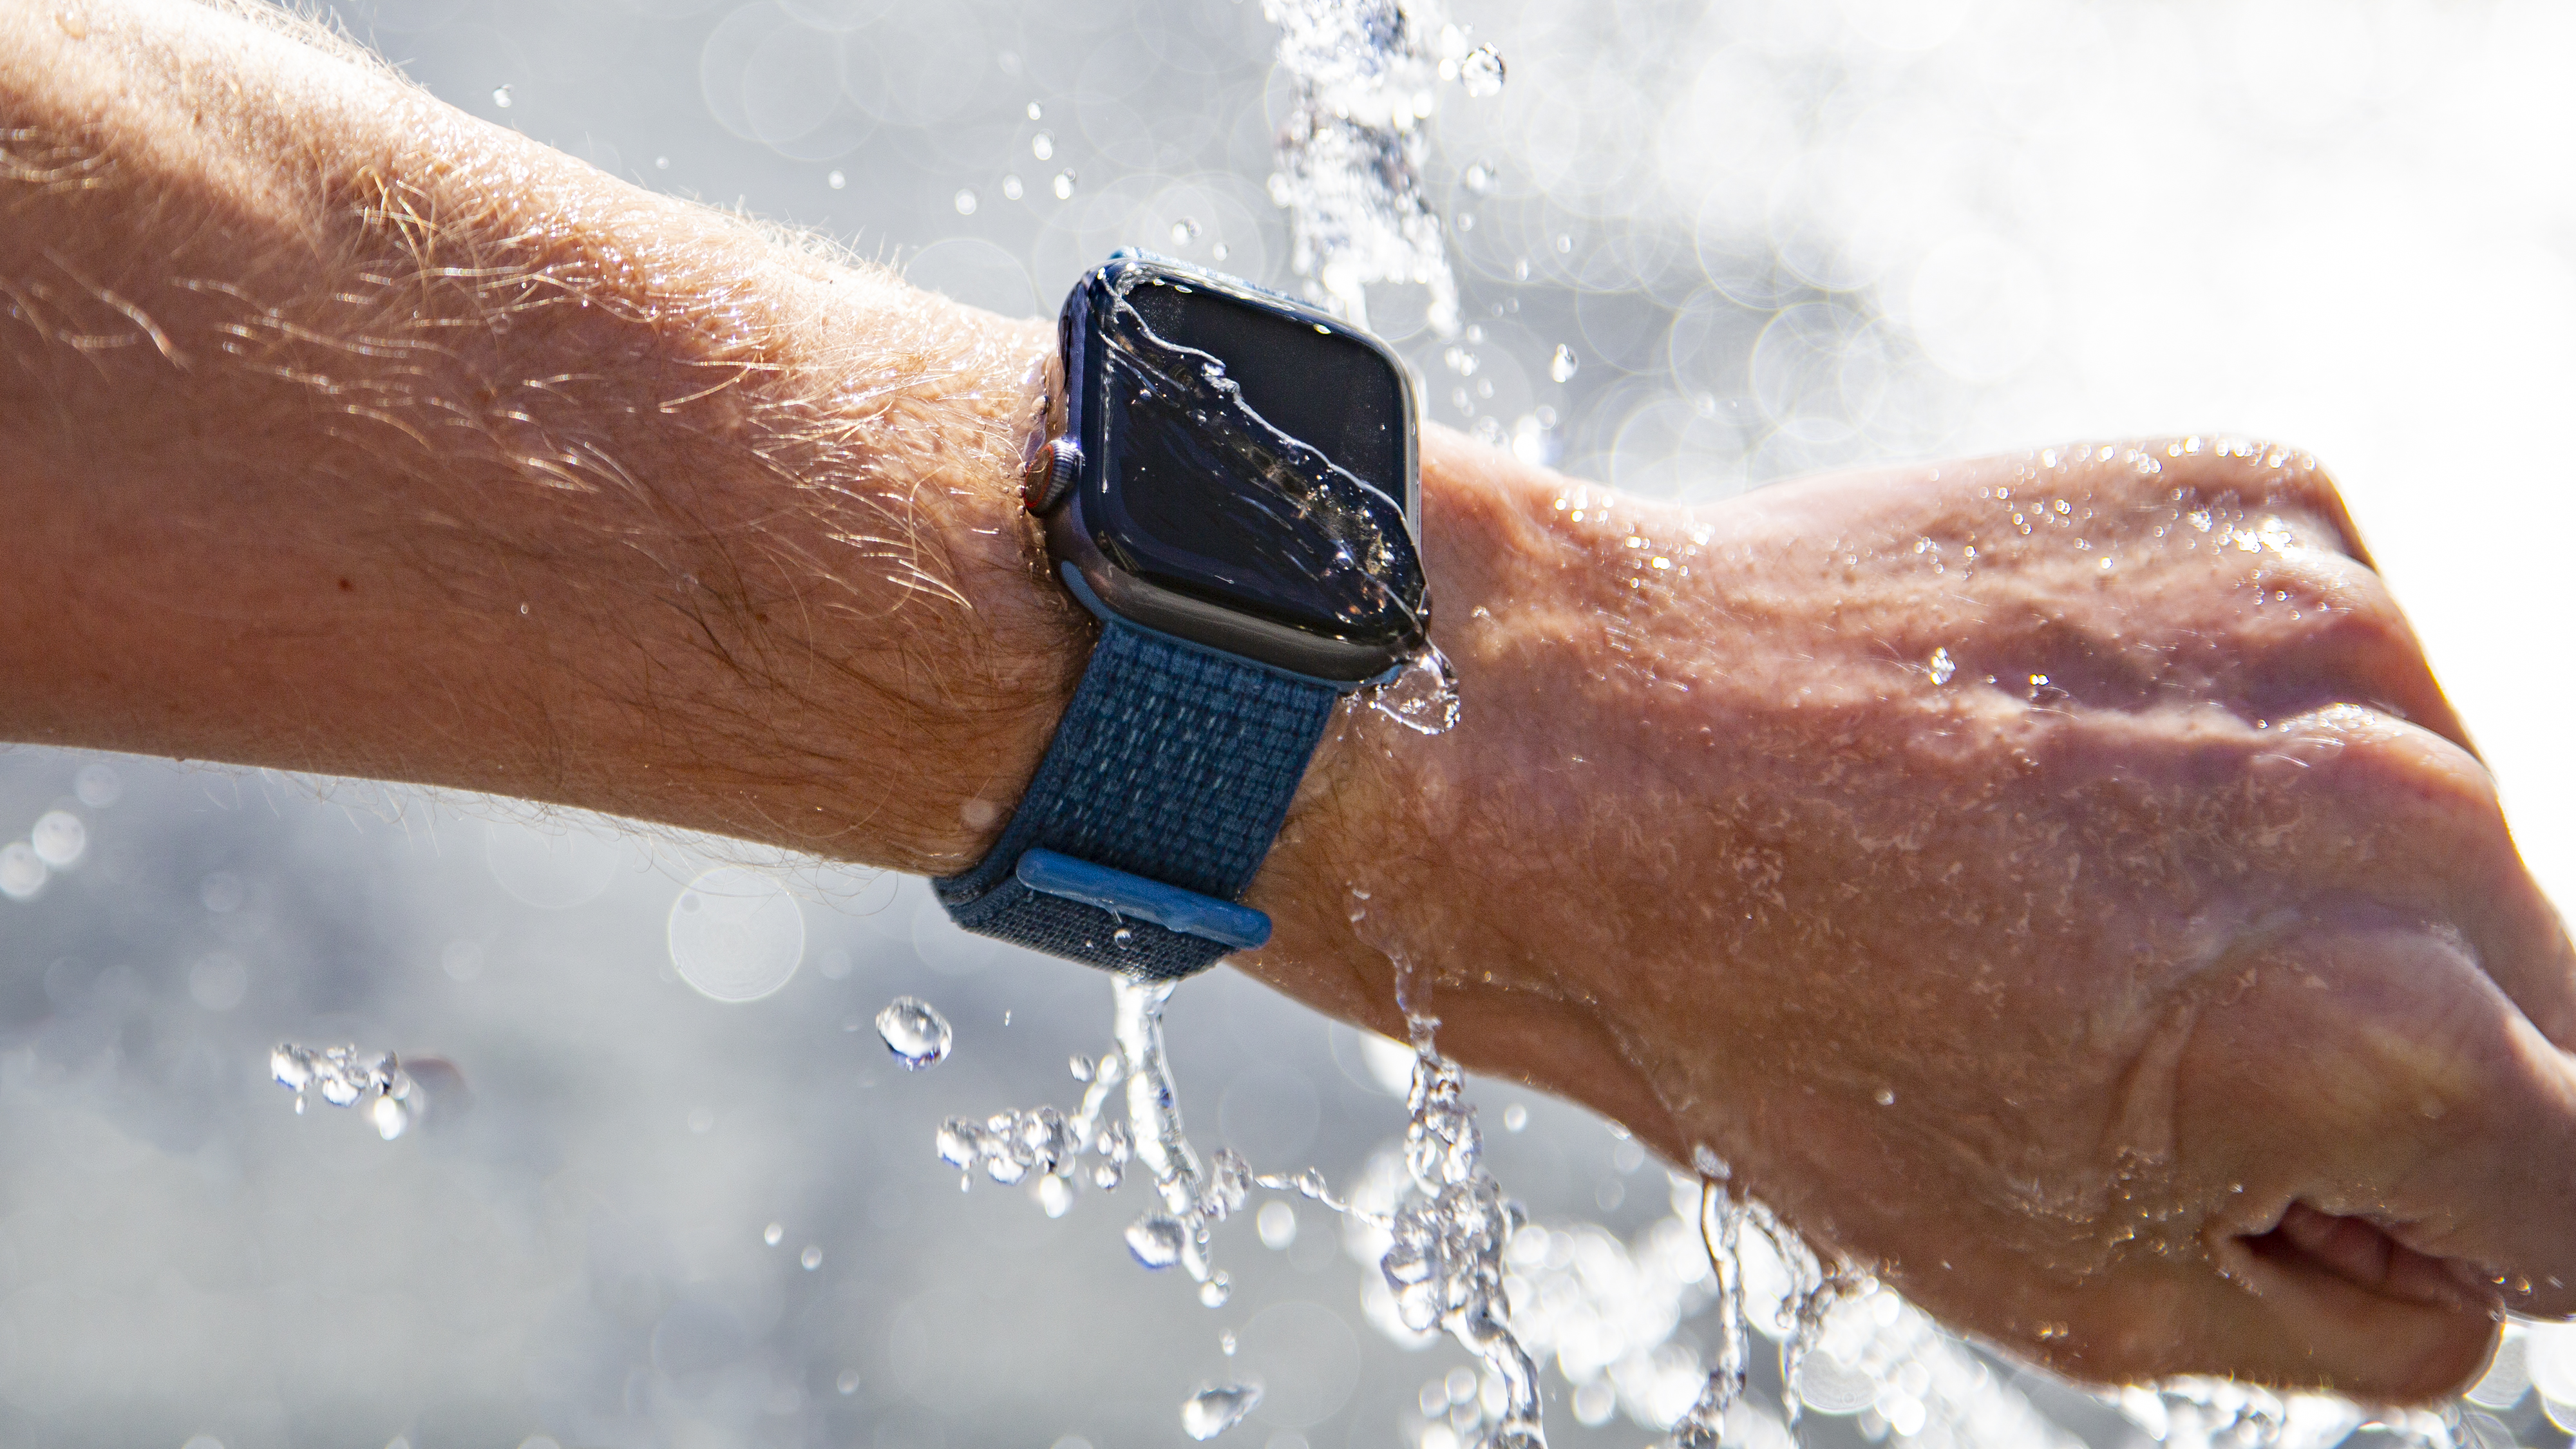 can i shower with apple watch series 3